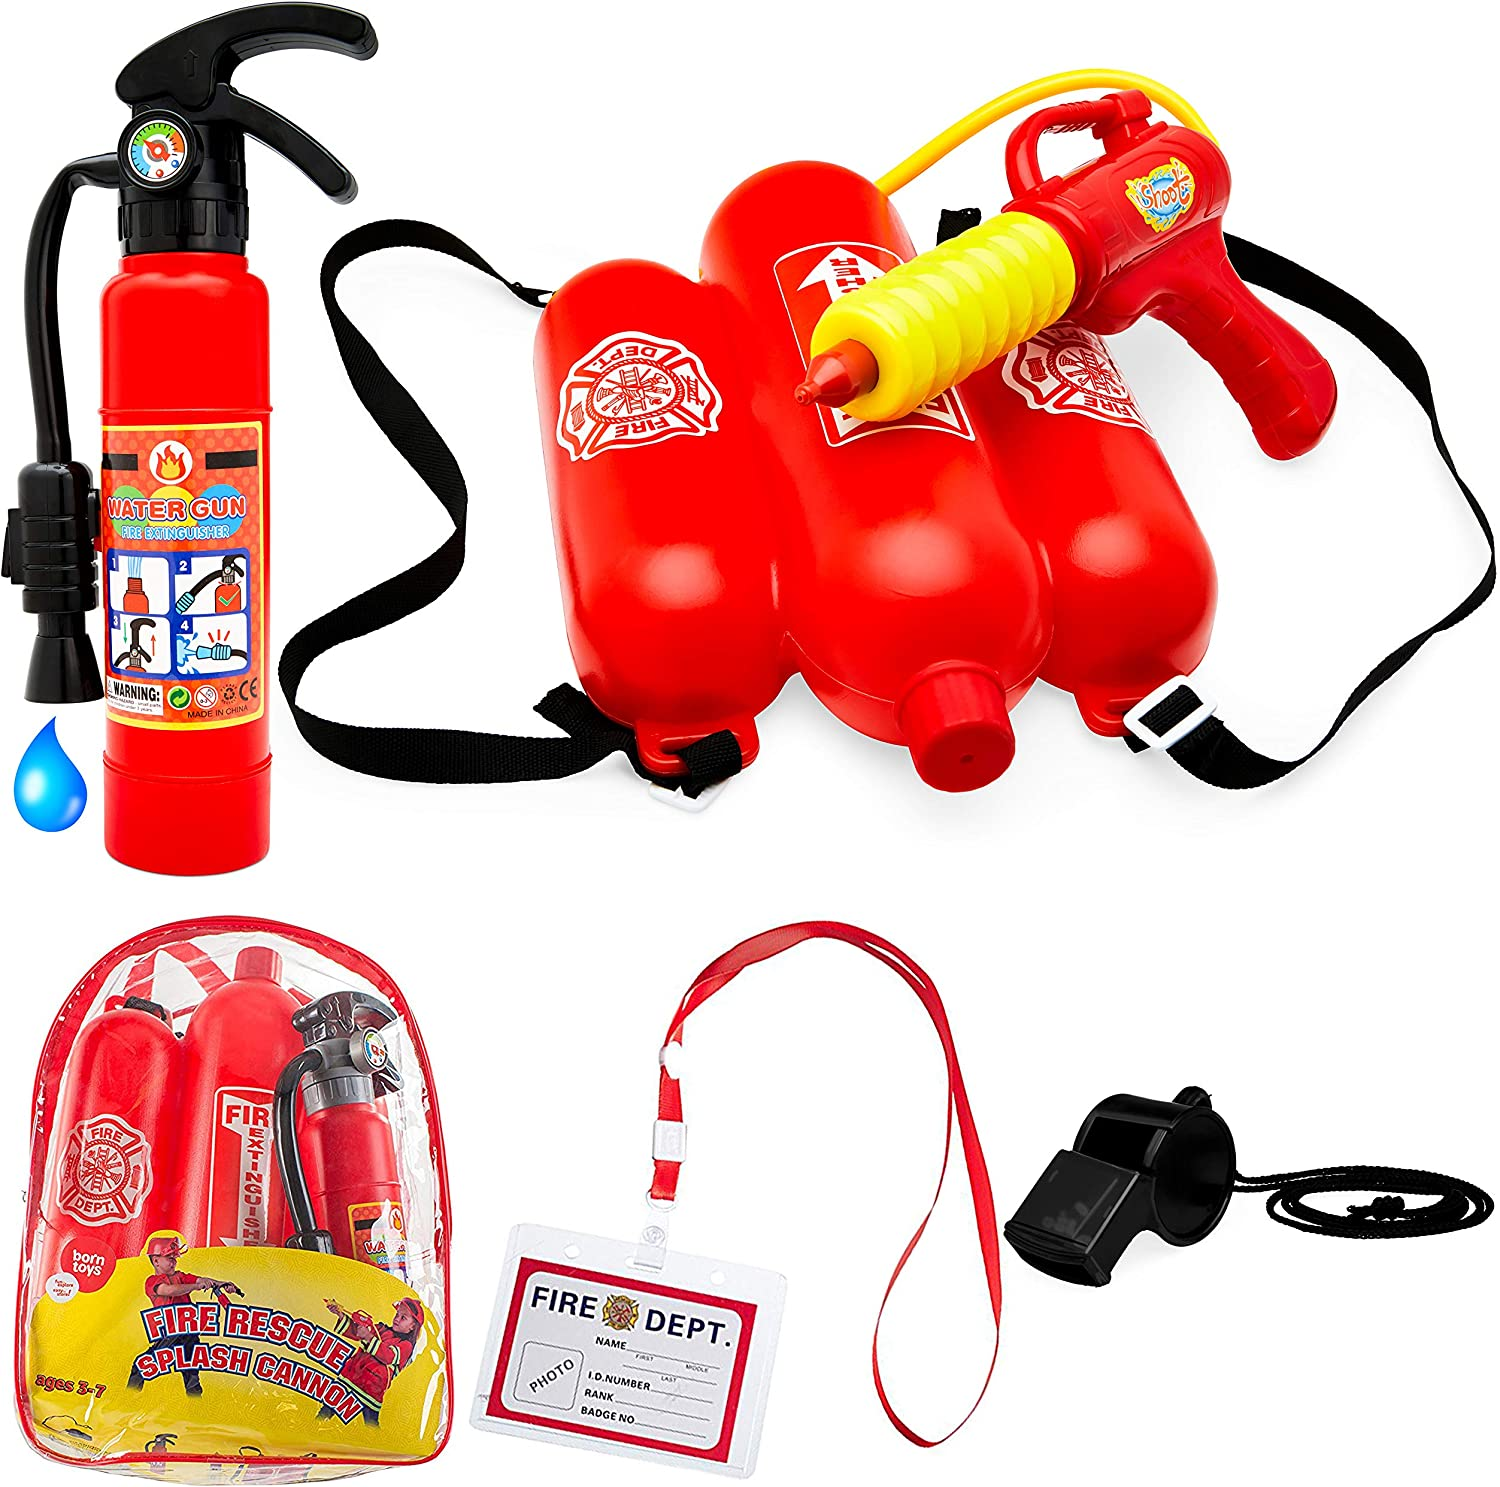 Born Toys 5 Piece Premium Firefighter Water Gun Toy Set and fire Toy Extinguisher. for Fireman Costume, Outdoors, Pools, Summer,Beach,Bath and Halloween.Includes Bag